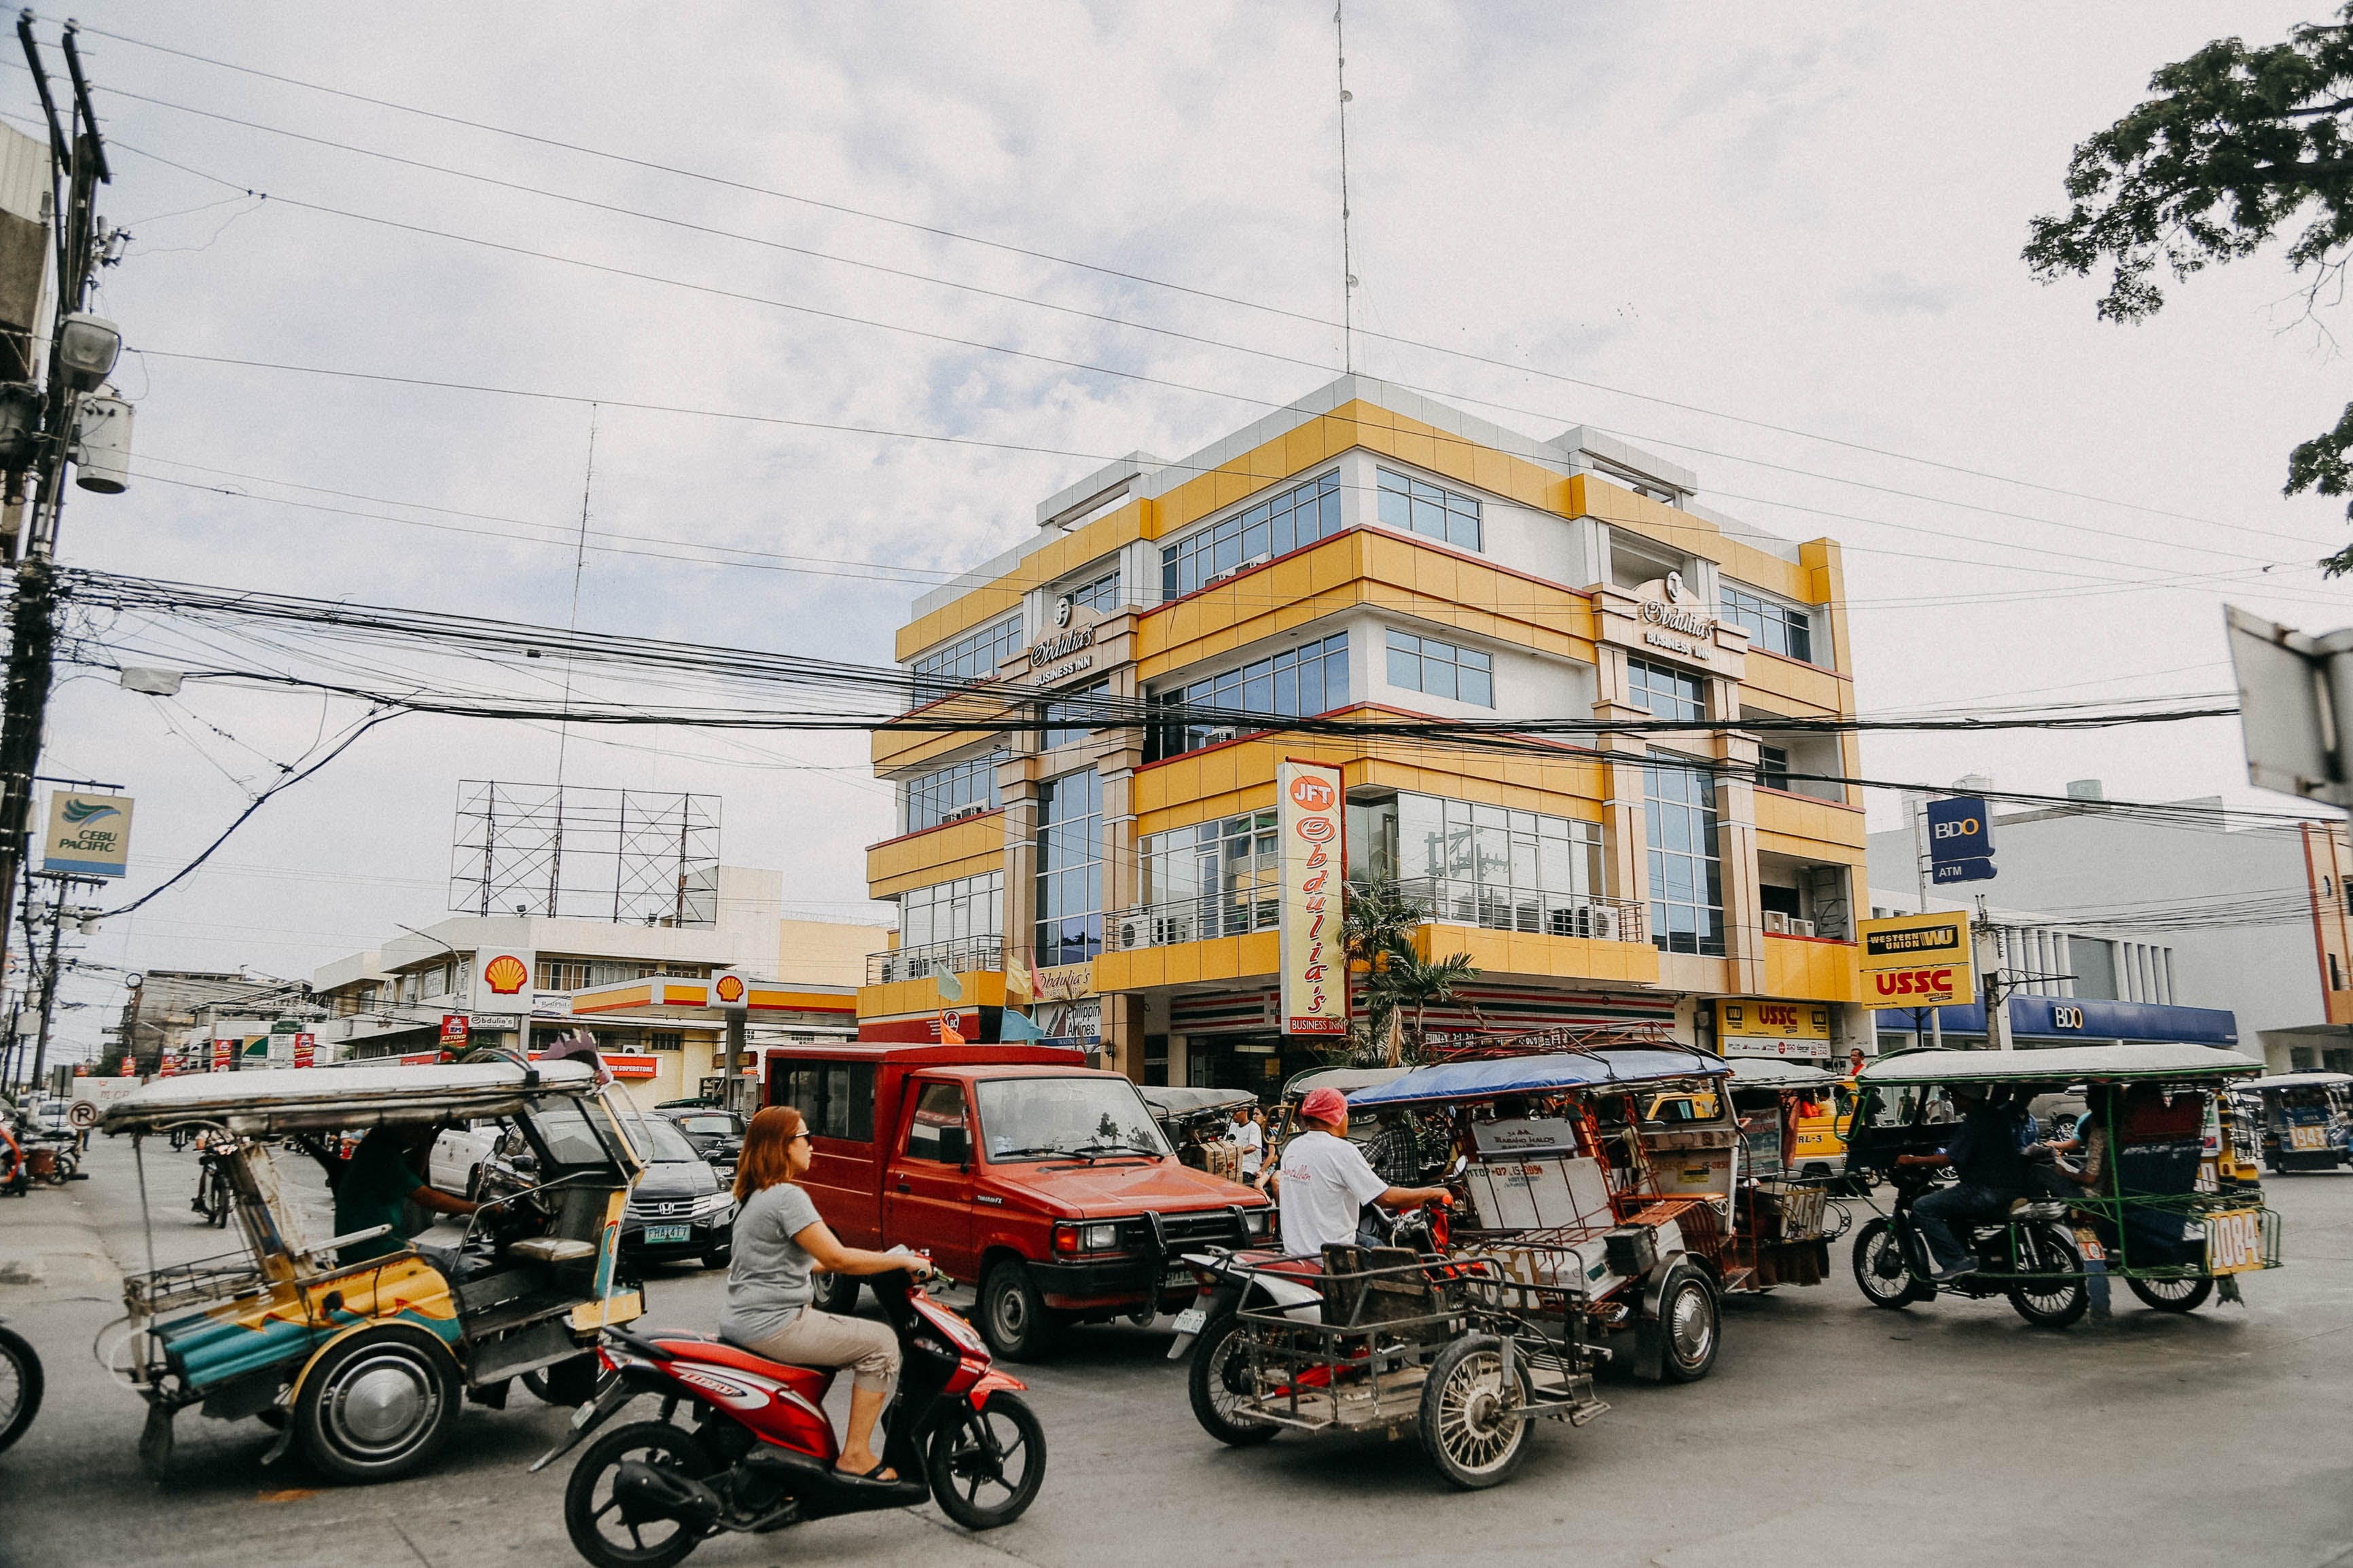 Moving Vehicles Near Yellow Painted Building